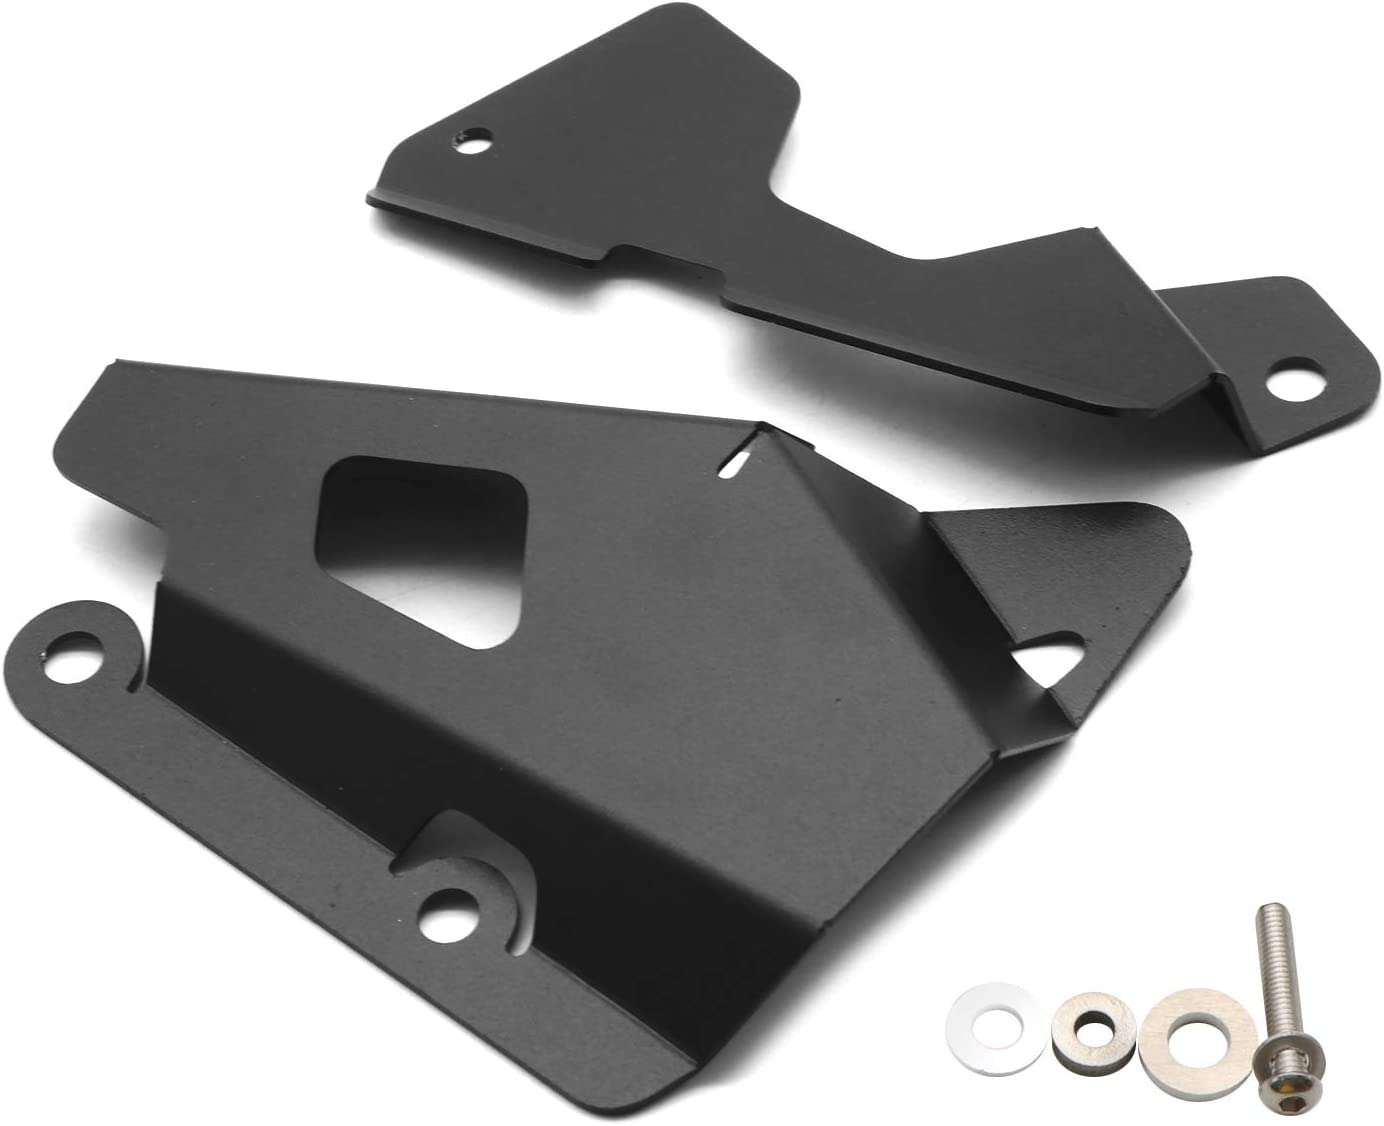 Topteng Motorcycle Rear Brake Reservoir Guard Cover fits for YAMAHA XSR700 2015-2020